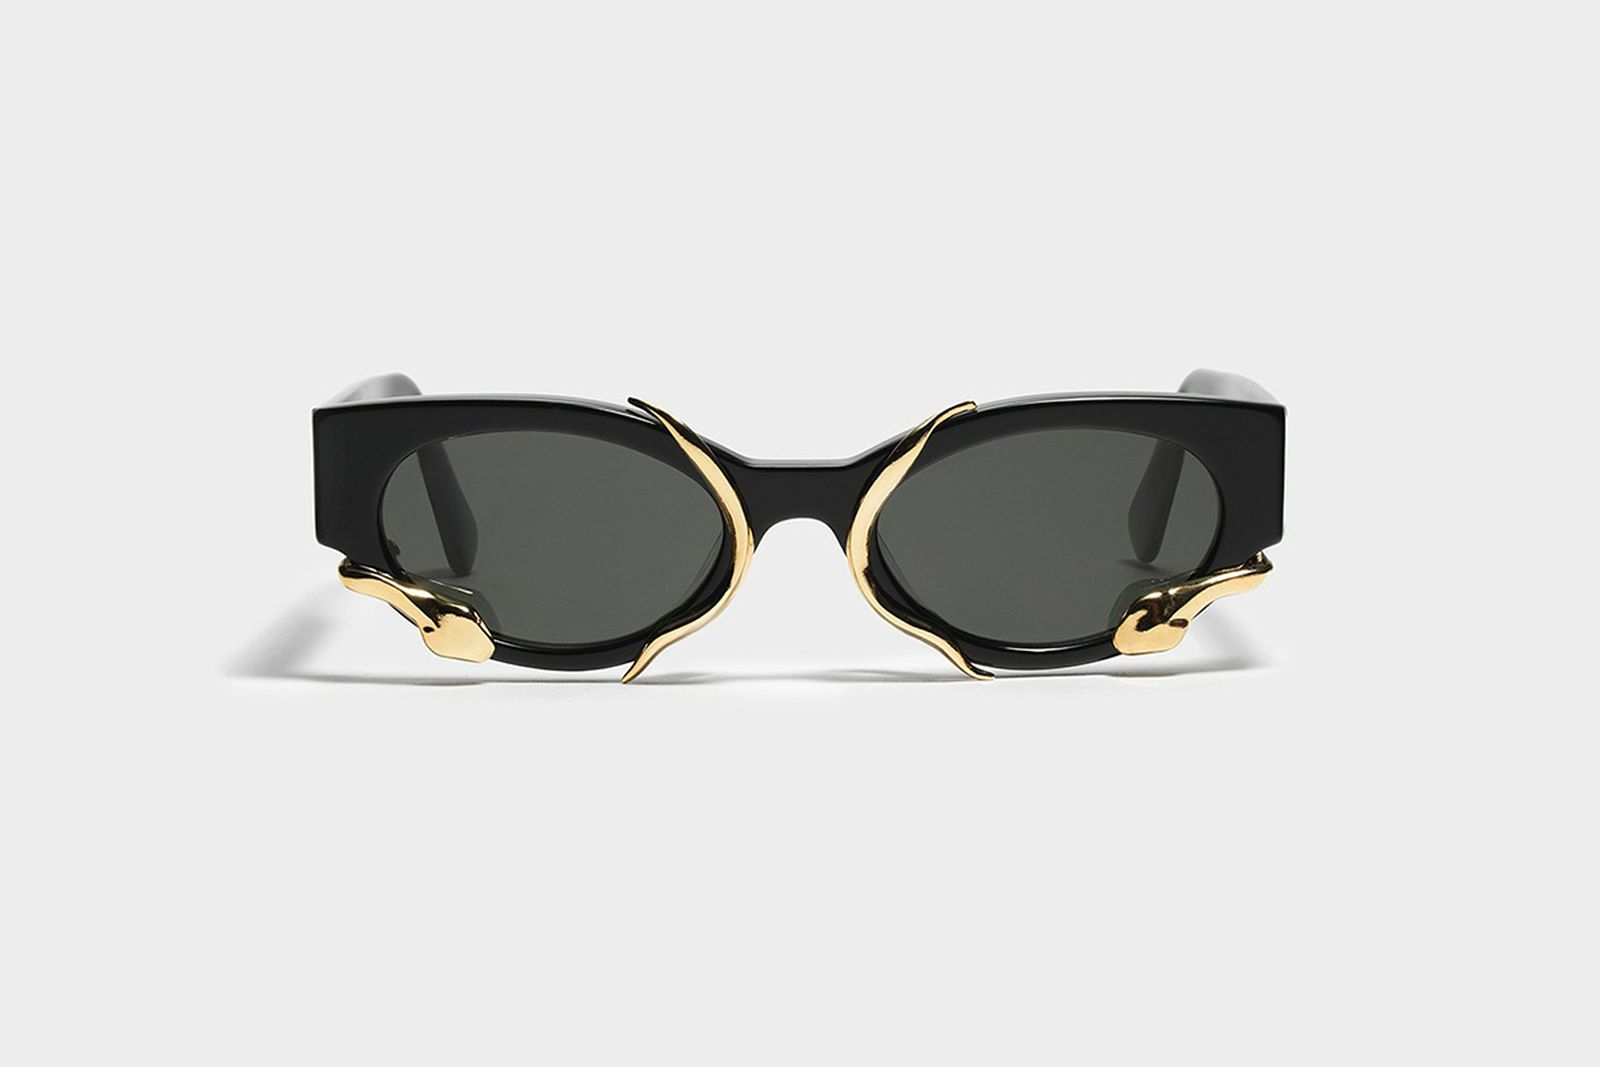 alexander wang gentle monster sunglasses